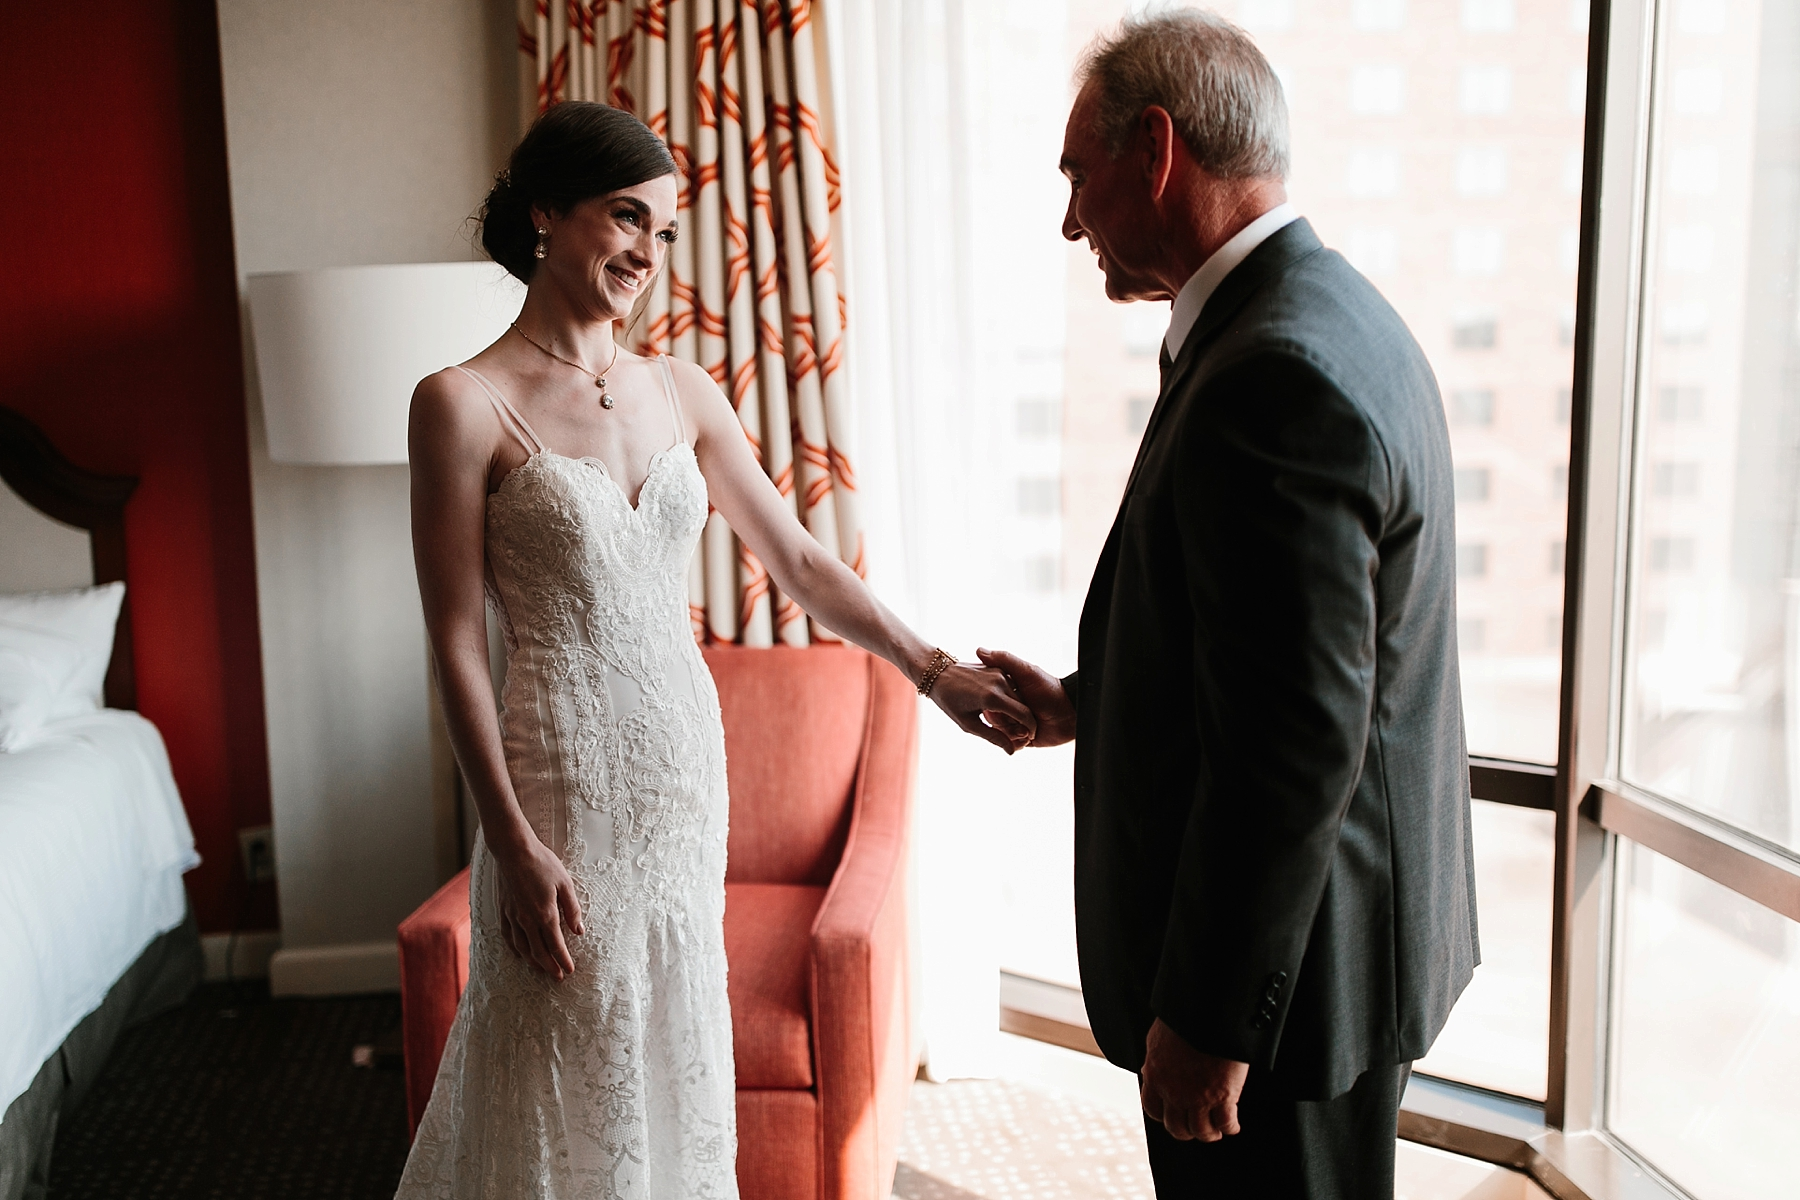 Emily + Caleb _ an elegant, intentional, industrial style wedding with navy + gold accents at 6500 in Dallas, TX by North Texas Wedding Photographer Rachel Meagan Photography _ 052